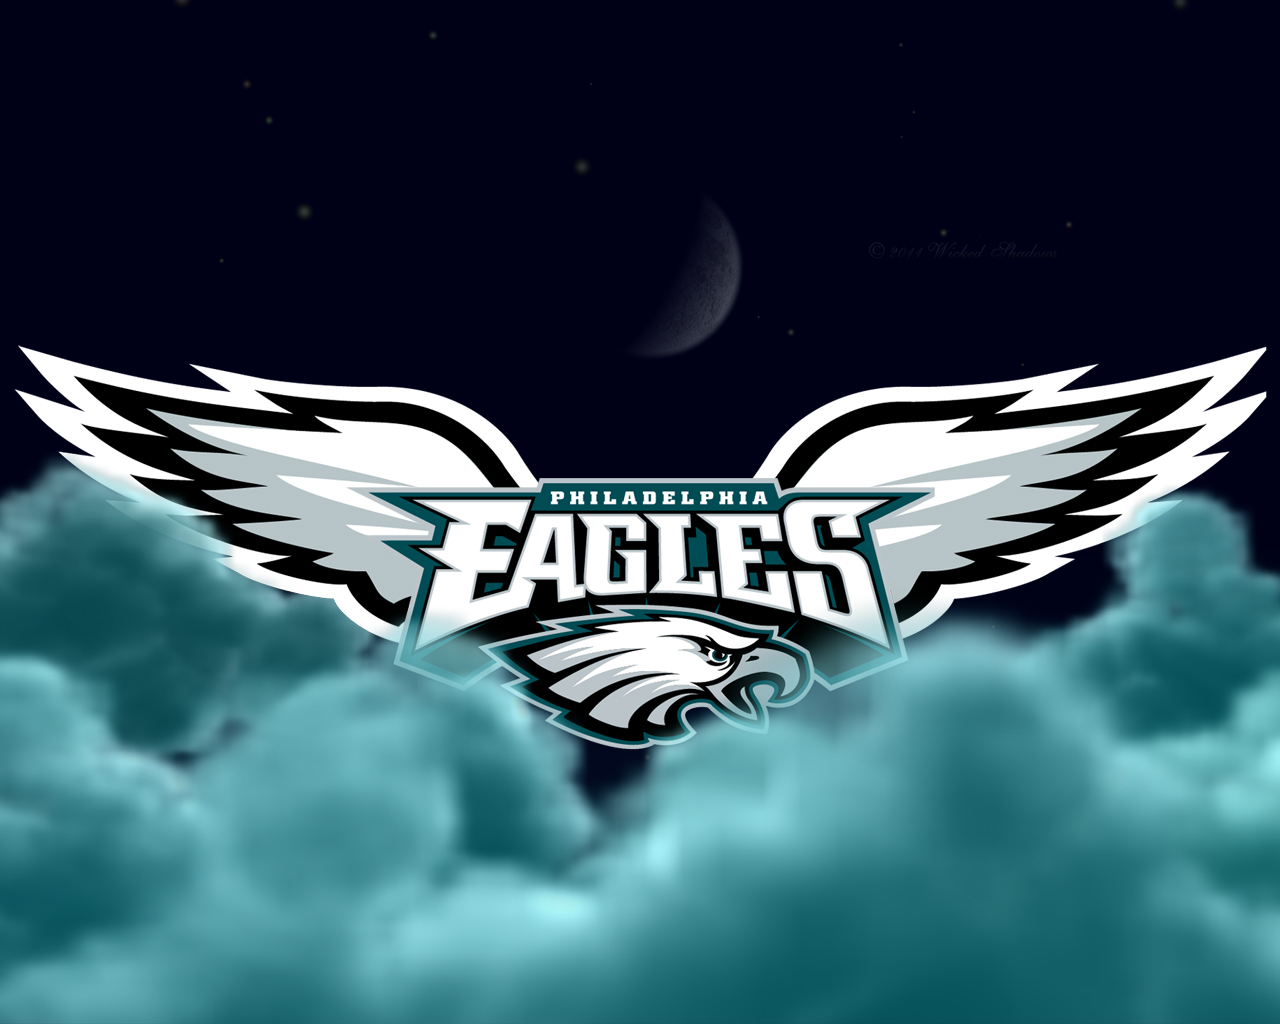 Wallpapers By Wicked Shadows Philadelphia Eagles Flying High Wallpaper